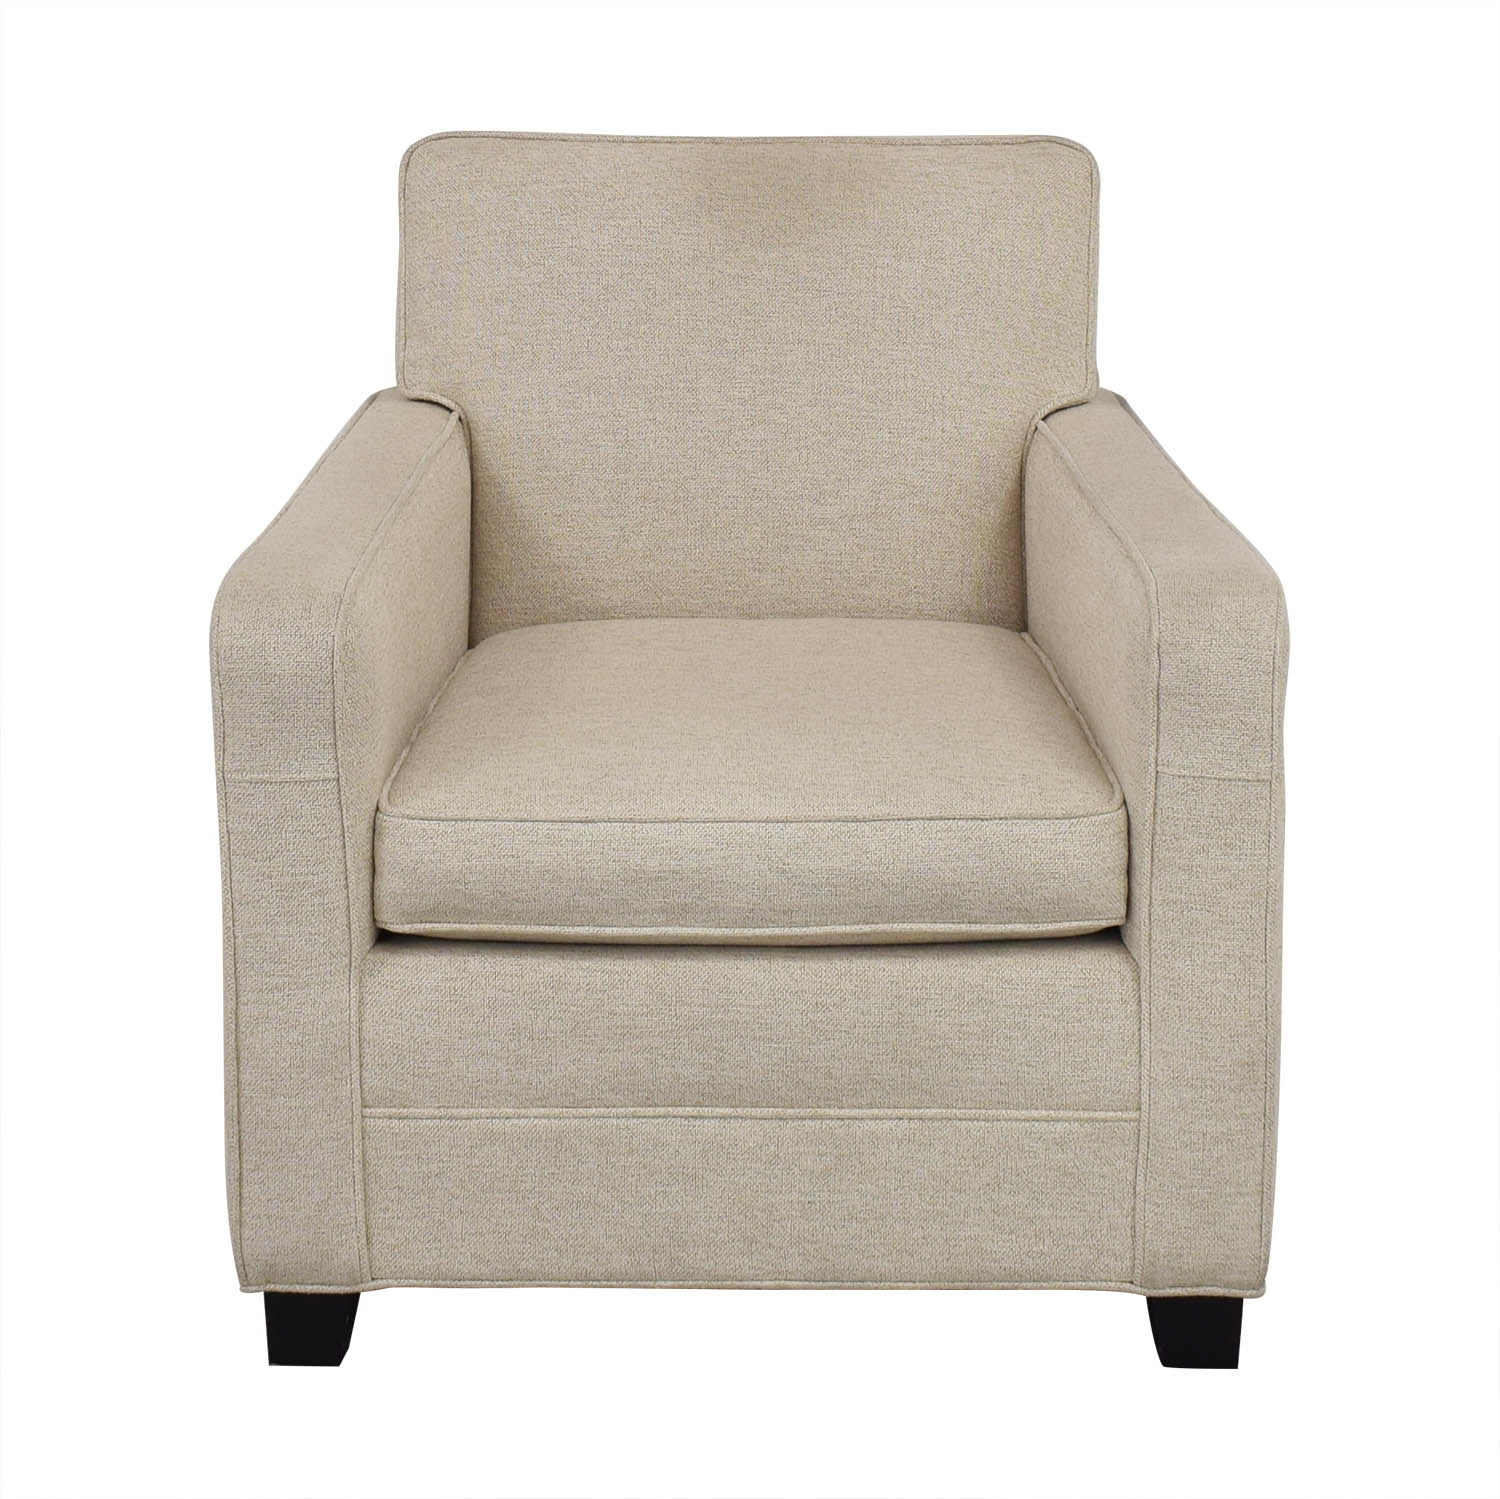 Mitchell Gold + Bob Williams Mitchell Gold + Bob Williams Kent Chair on sale